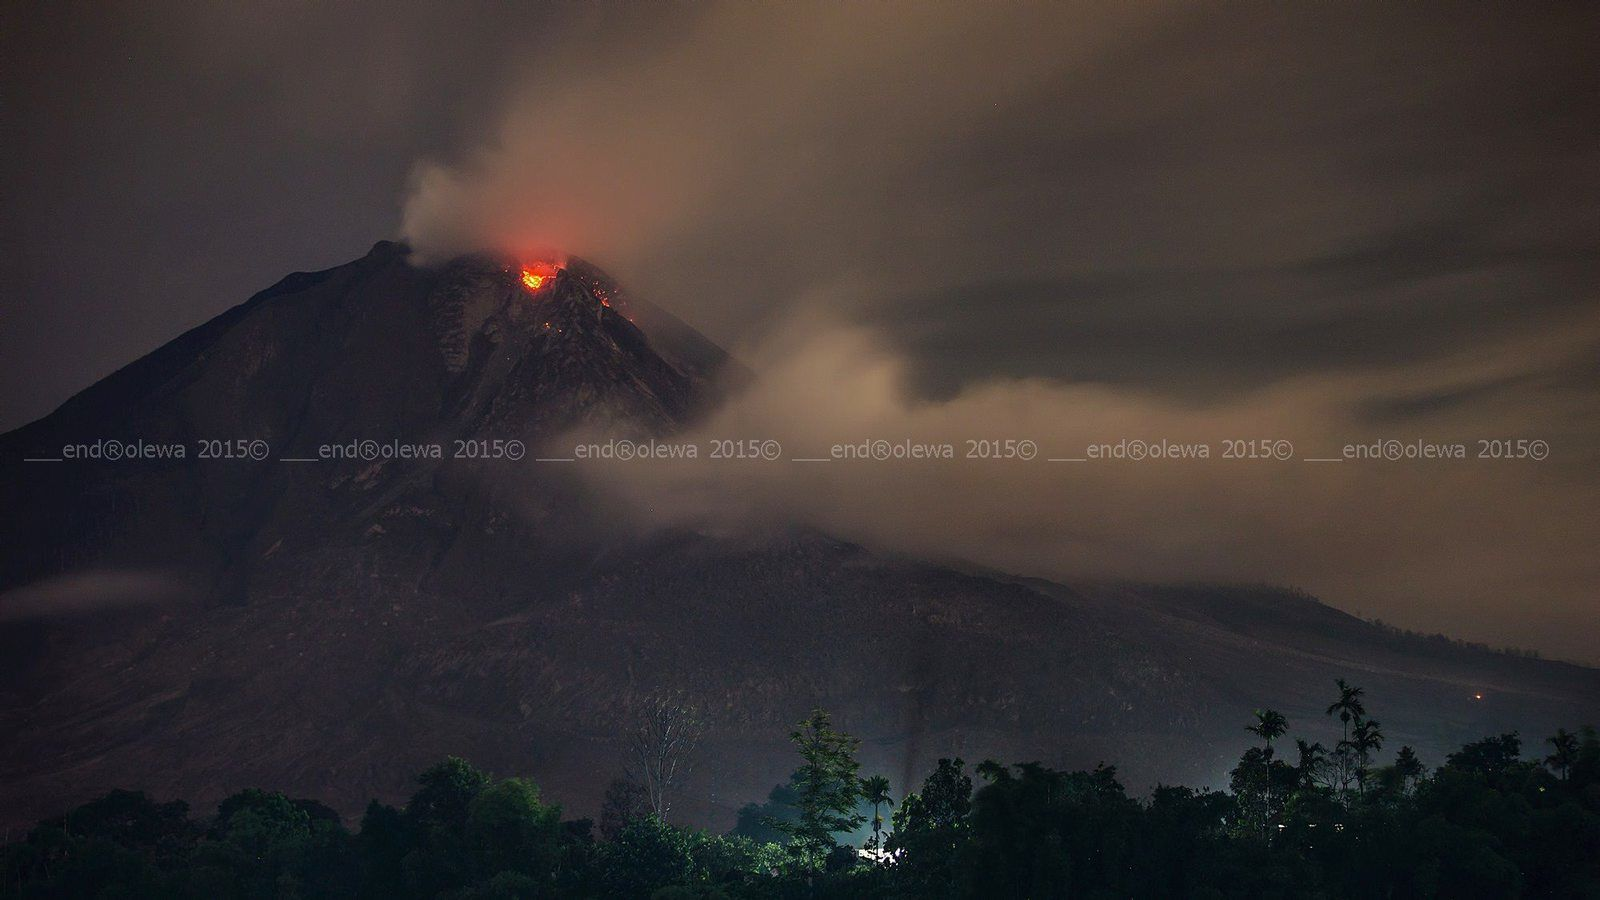 Sinabung - 07.19.2015 / 7:59 p.m. - photo endrolew@